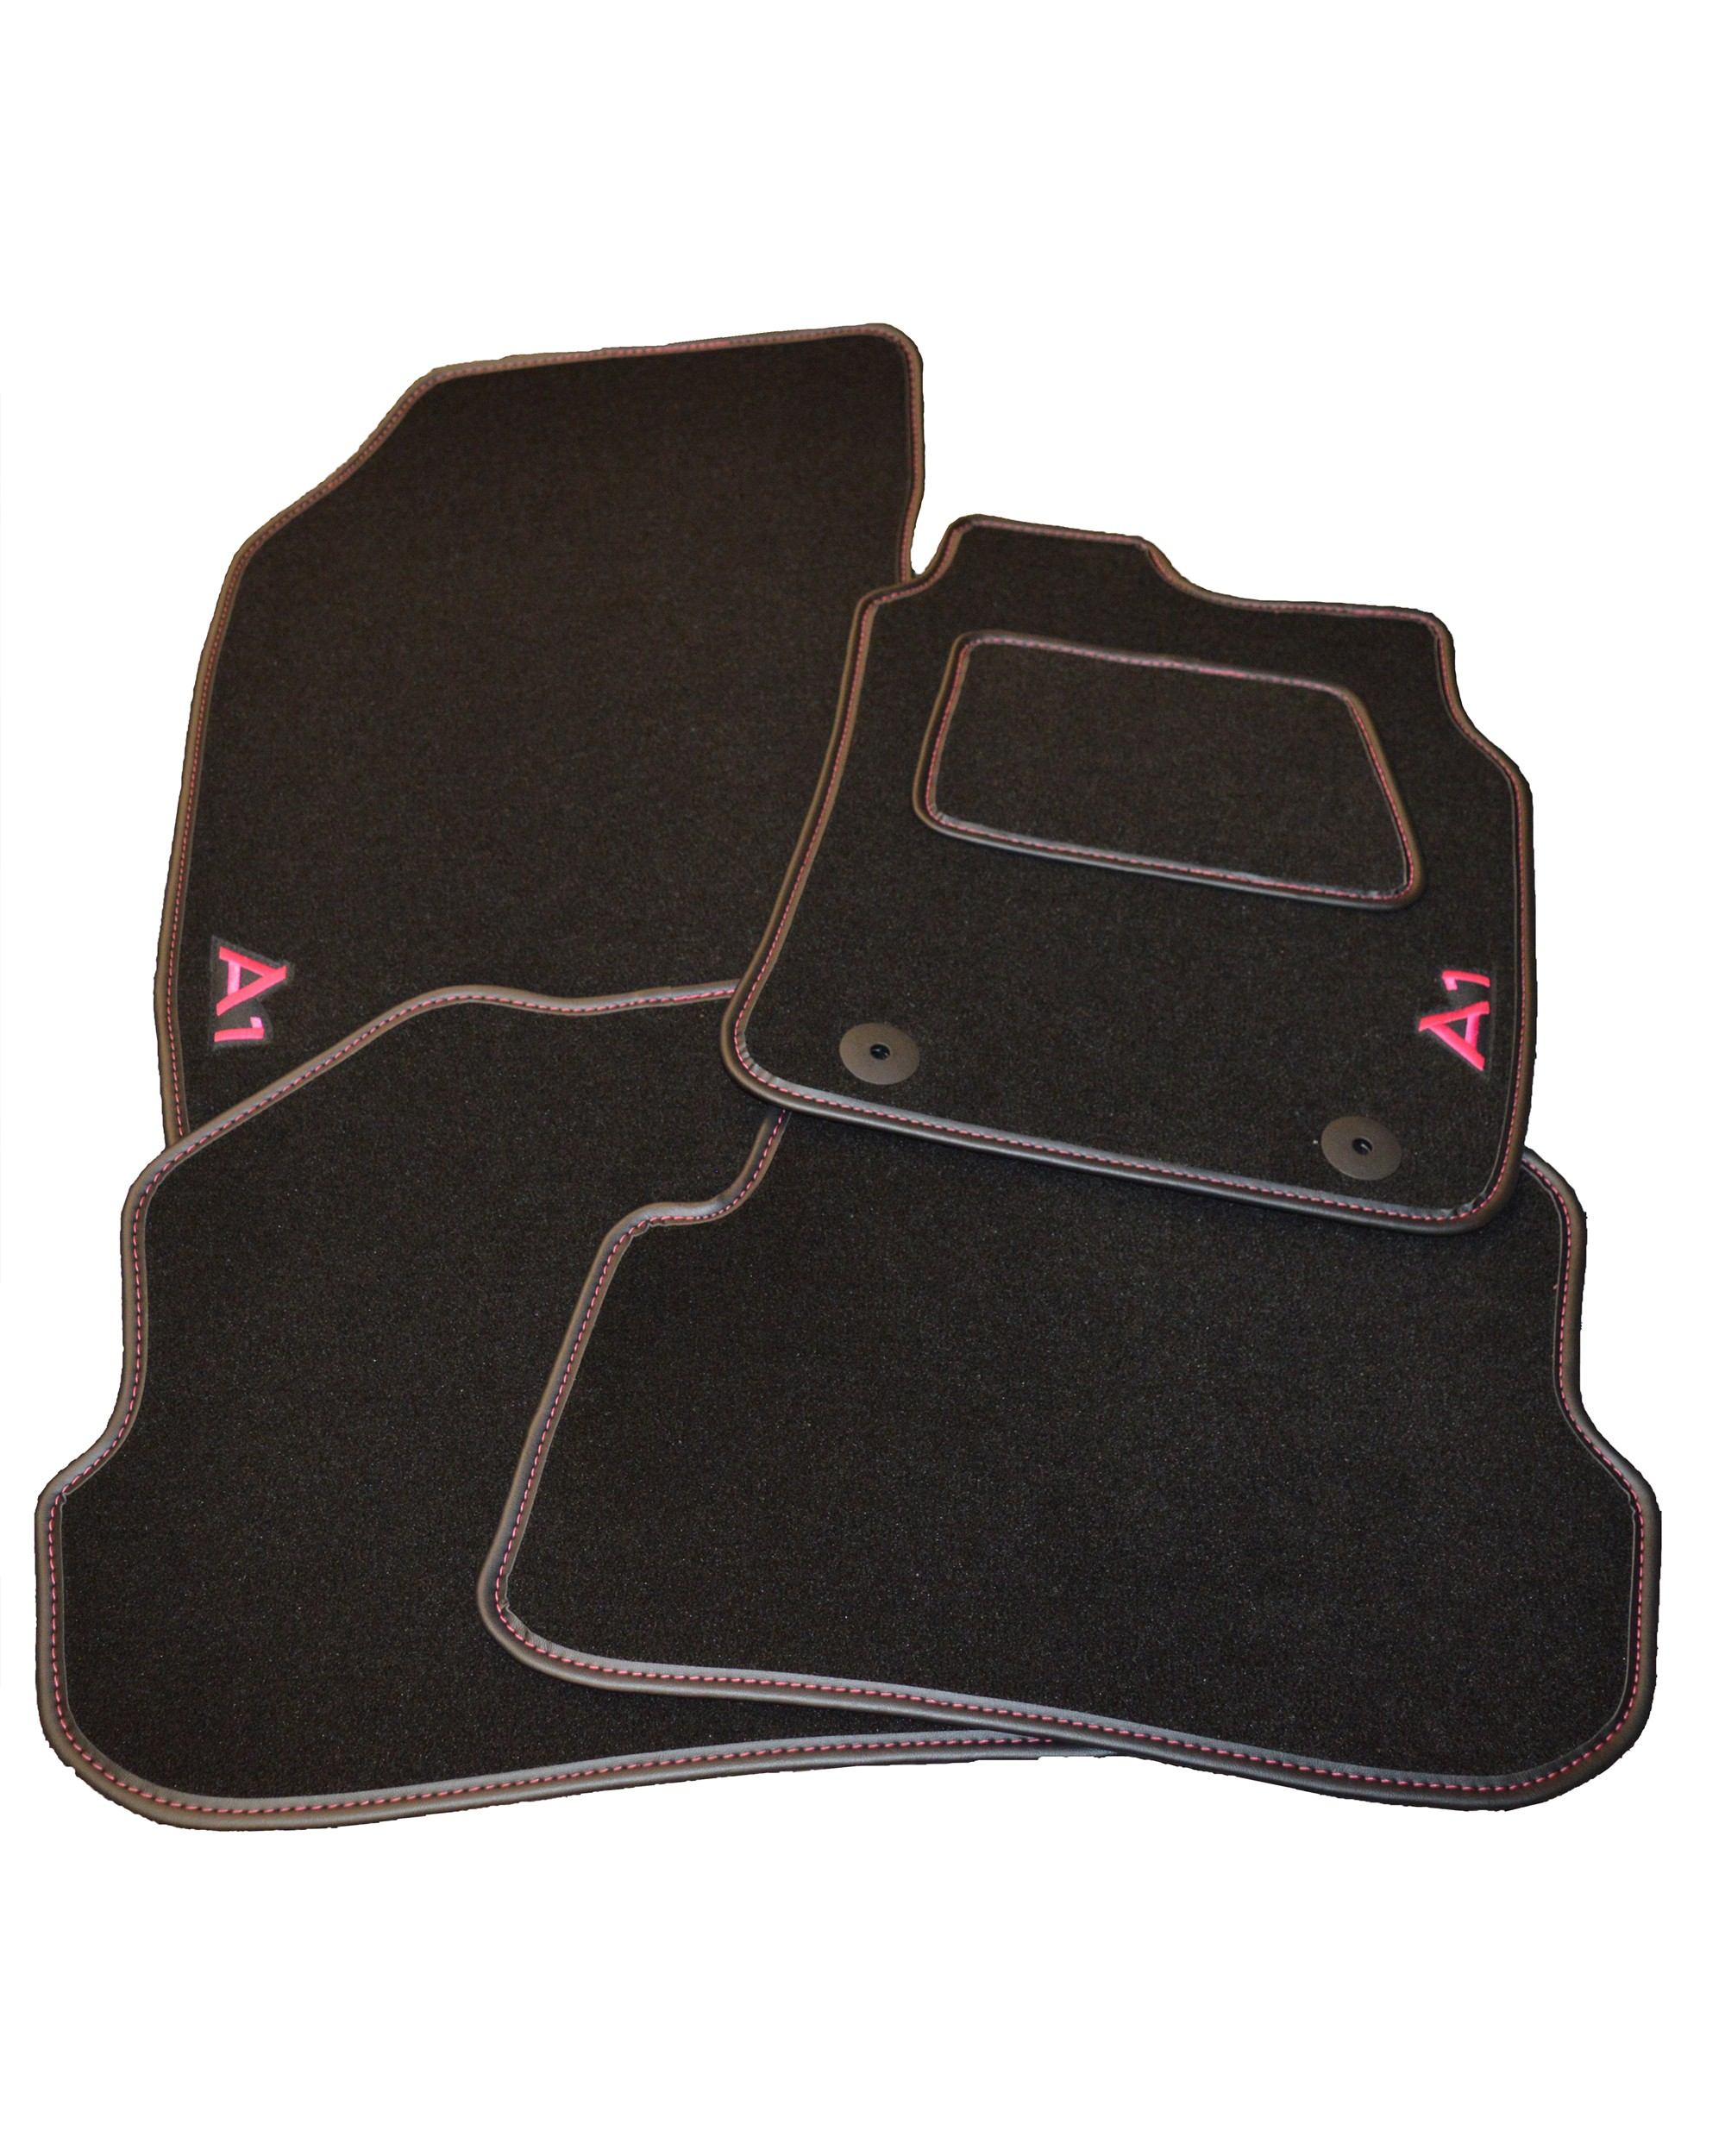 Audi A1 Full Set Of Car Mats With Logo